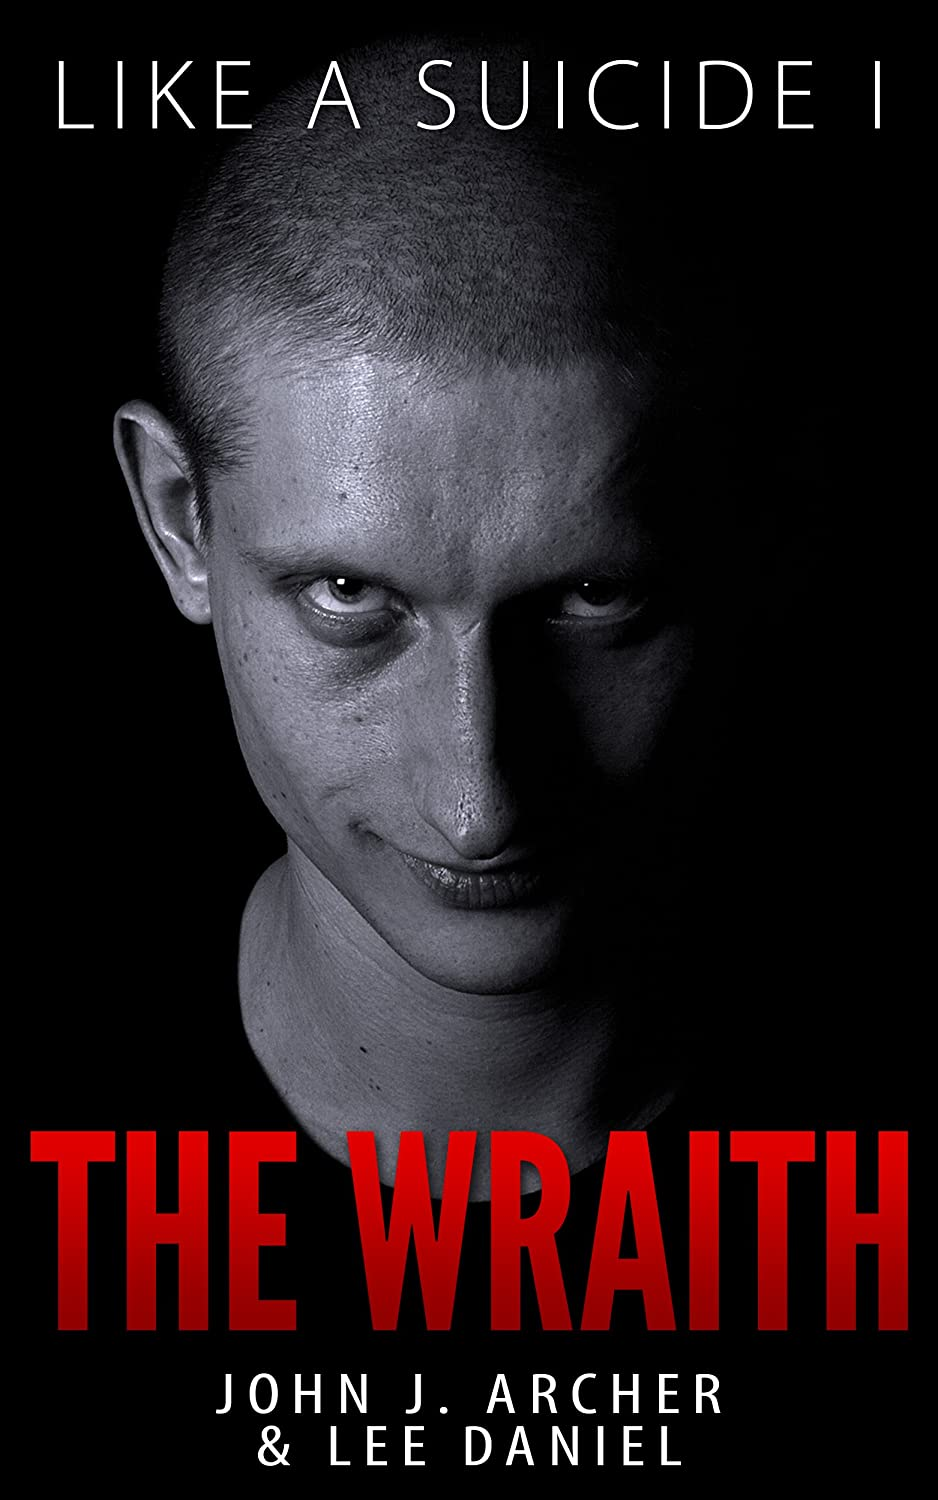 Like A Suicide: The Wraith (Book 1 of 'Like A Suicide' Psychological Thriller) by John J. Archer